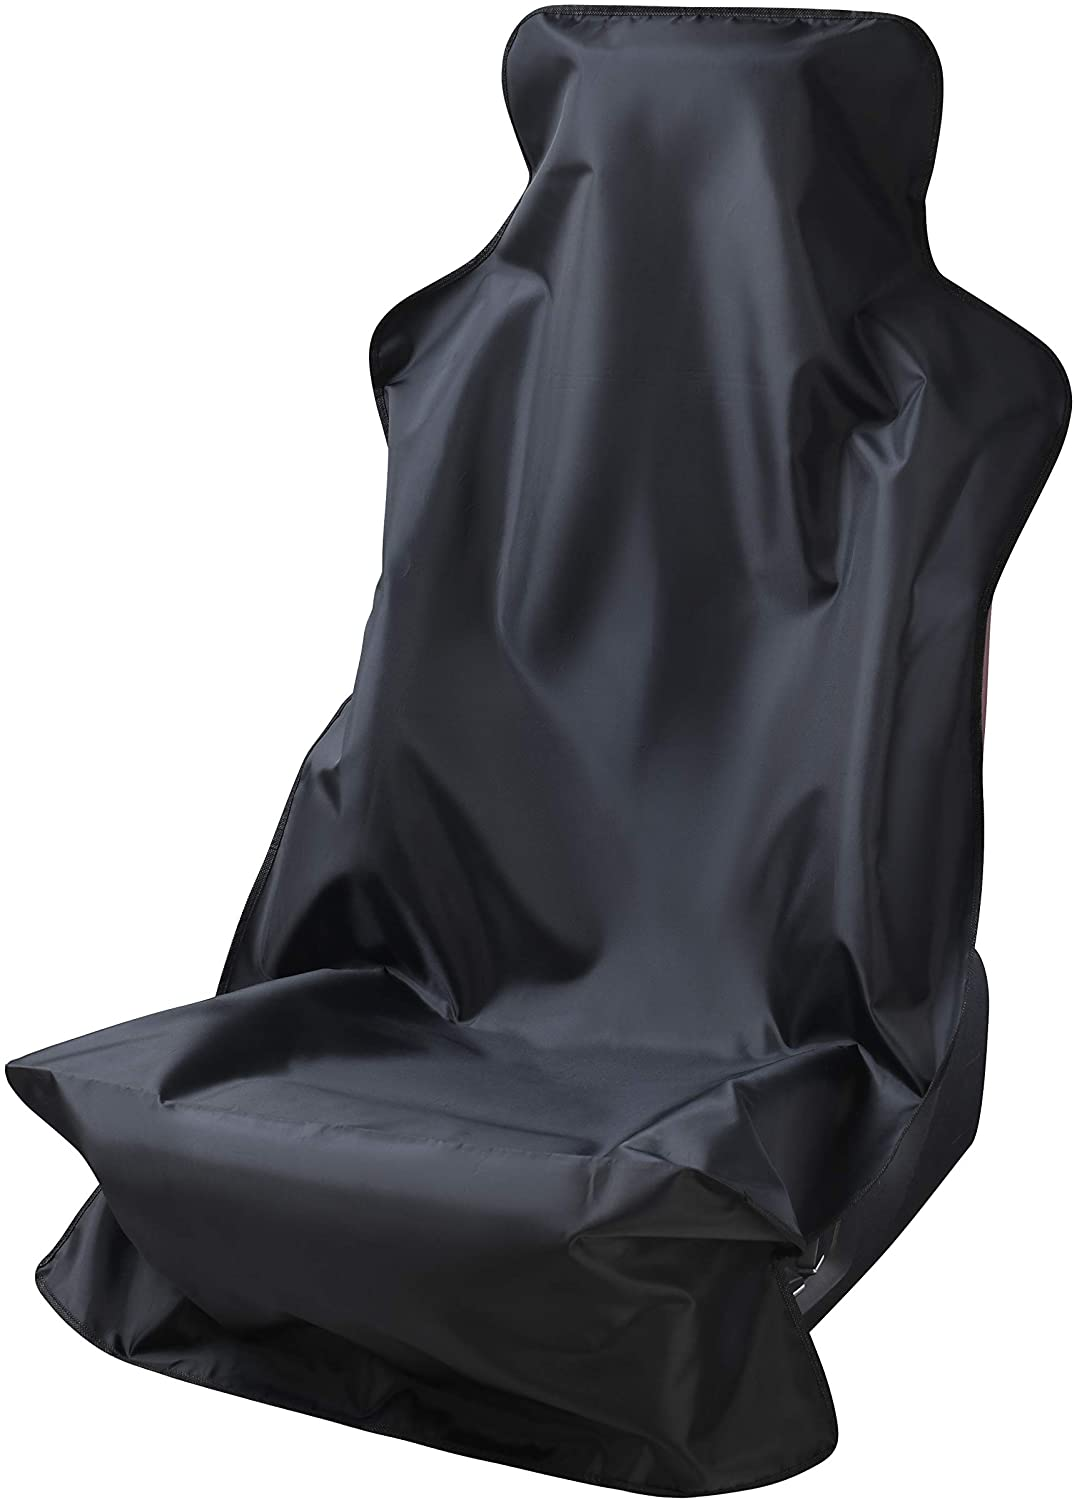 Magca Car Seat Cover Protector, Waterproof, Front Seat Cover for Universal Car Seat, Pack of 1